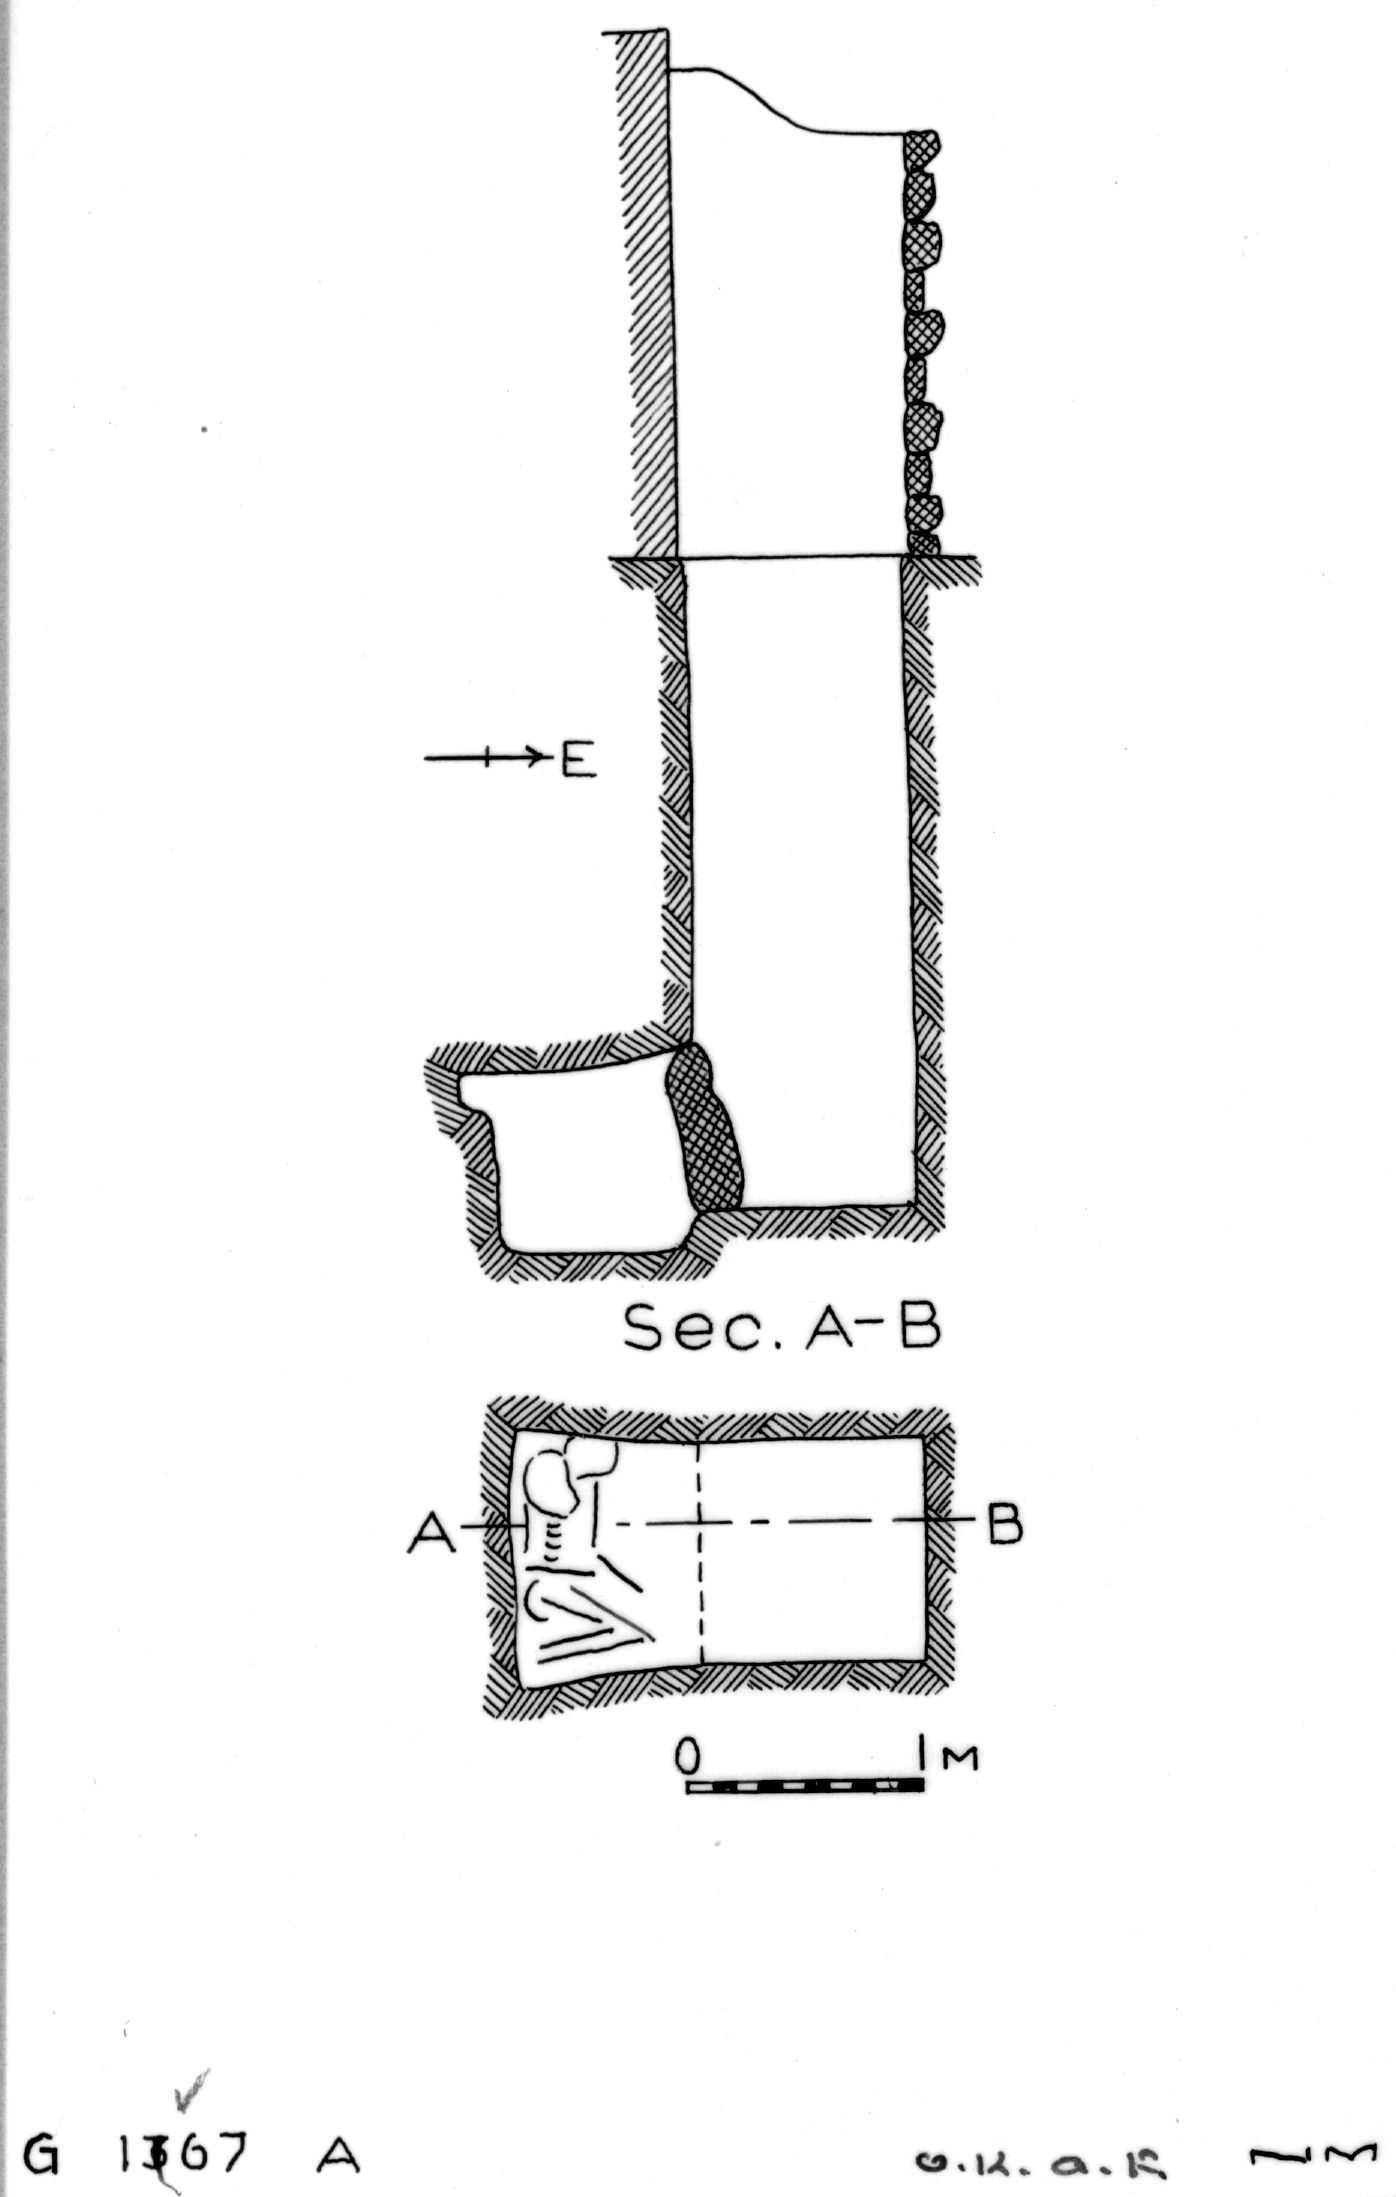 Maps and plans: G 1367, Shaft A